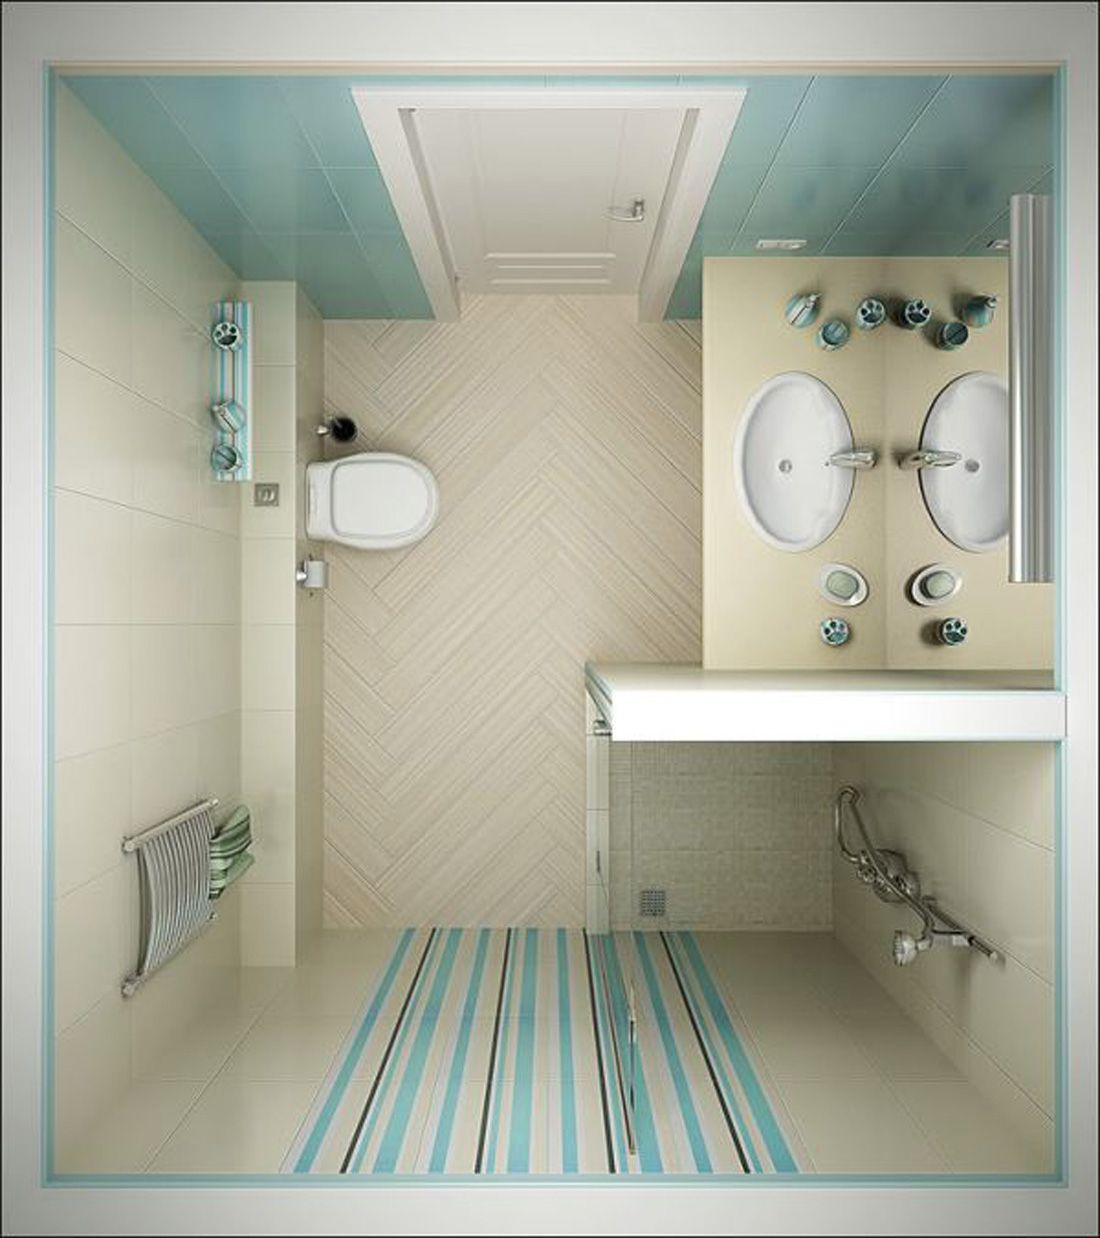 Micro Bathroom With A Shower Small Bathroom Layout Small Bathroom Bathroom Layout